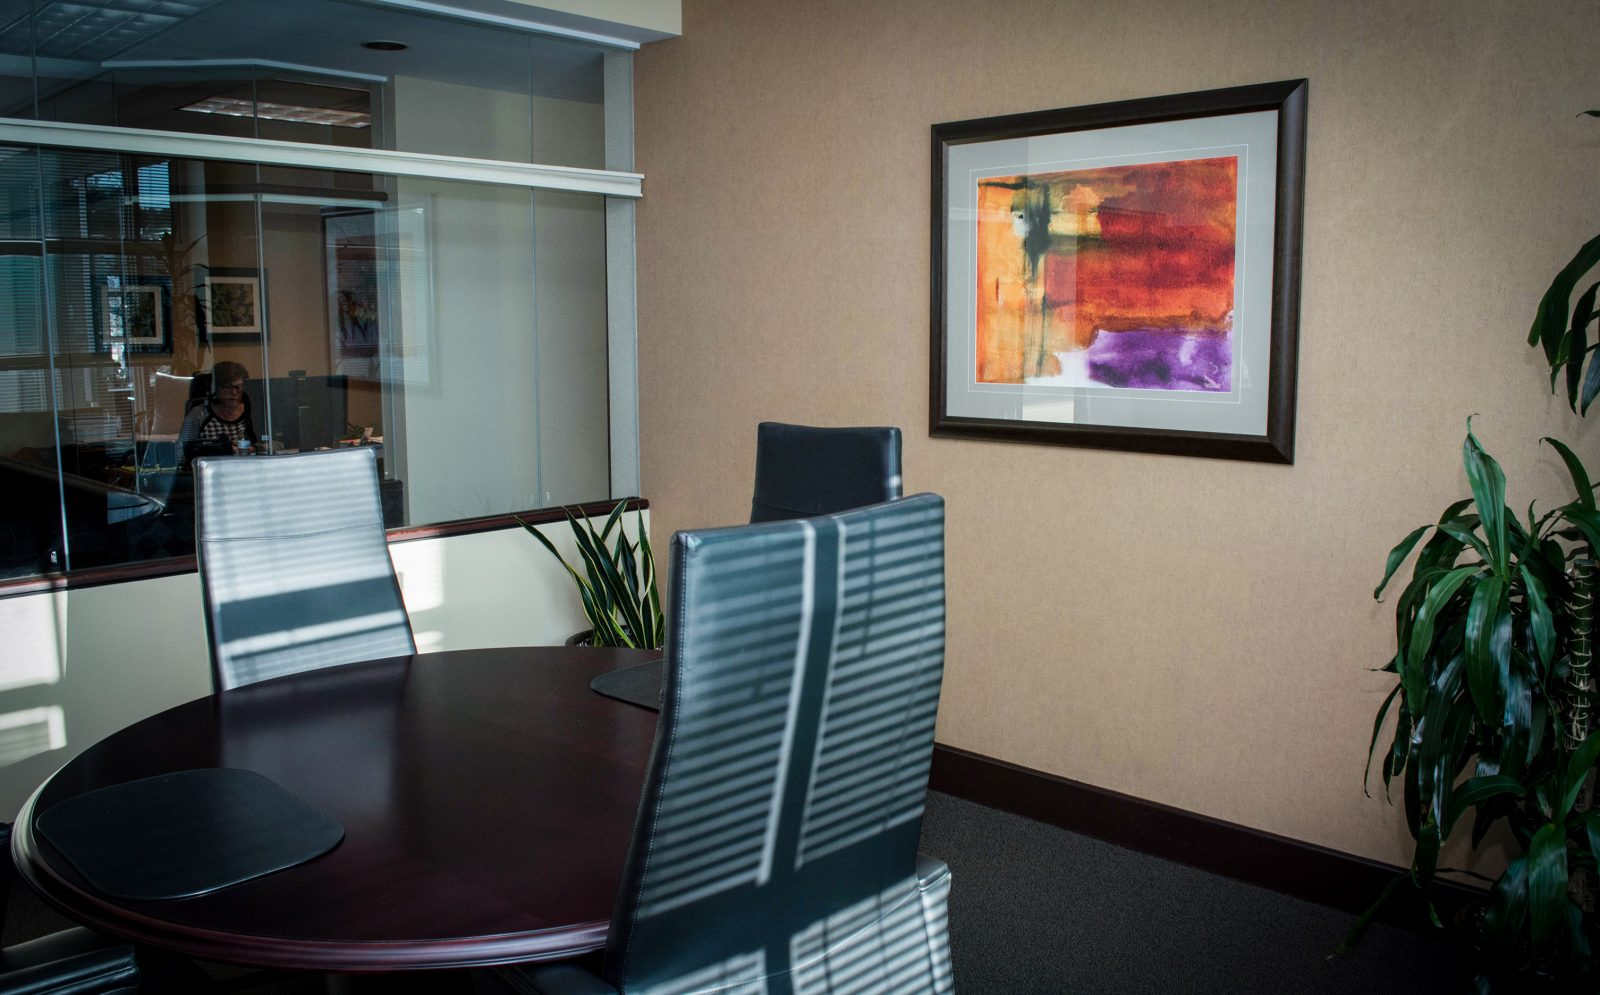 a framed painting on the wall of an office building with vacant chairs